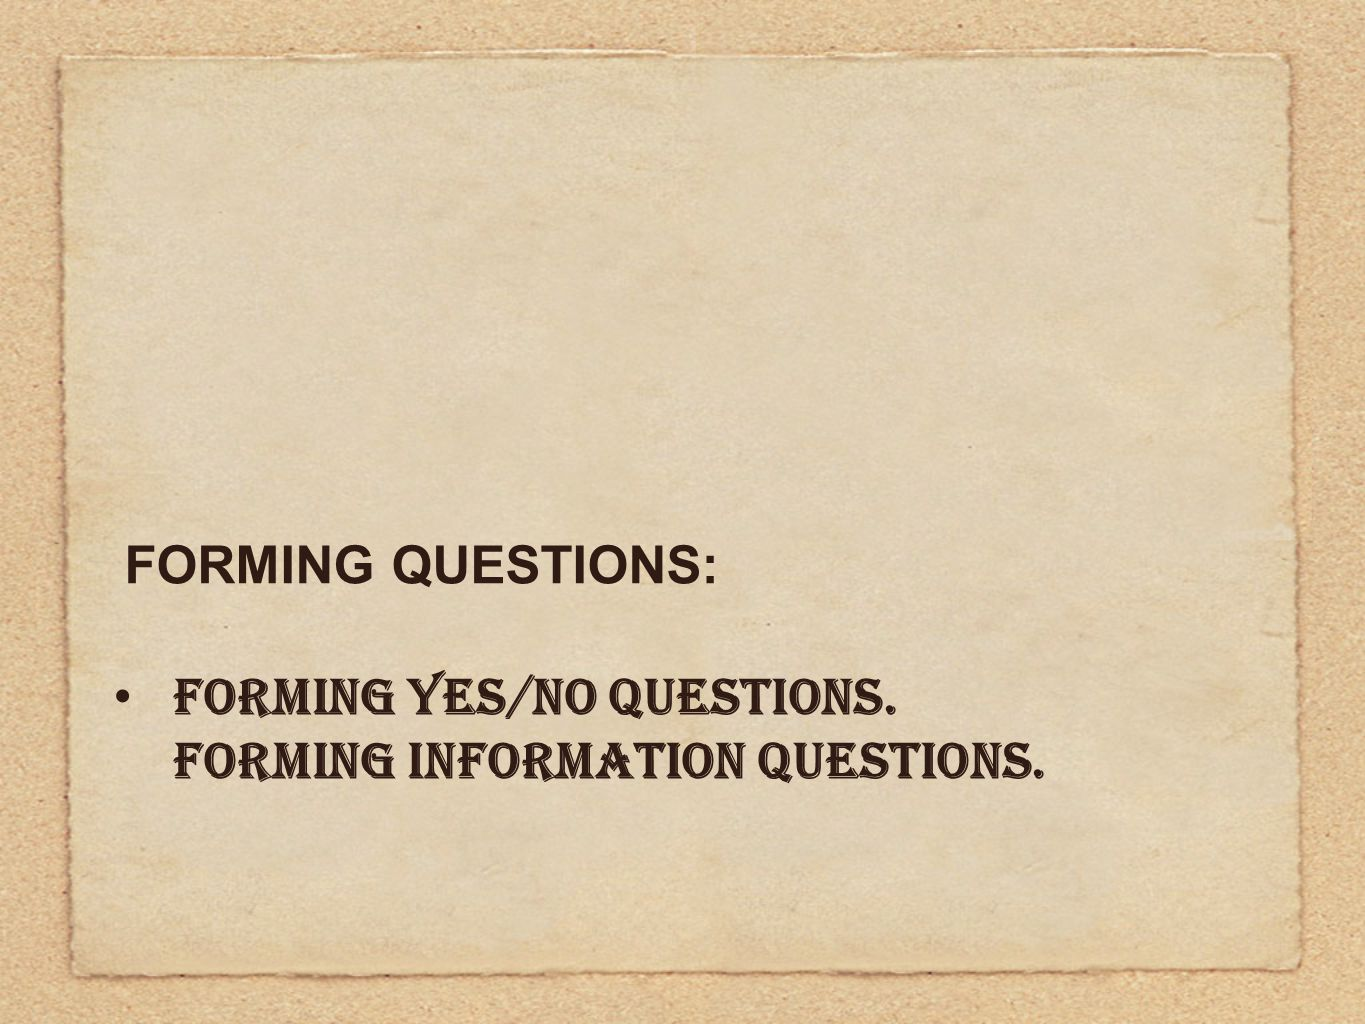 FORMING YES/NO QUESTIONS. FORMING INFORMATION QUESTIONS. FORMING QUESTIONS: